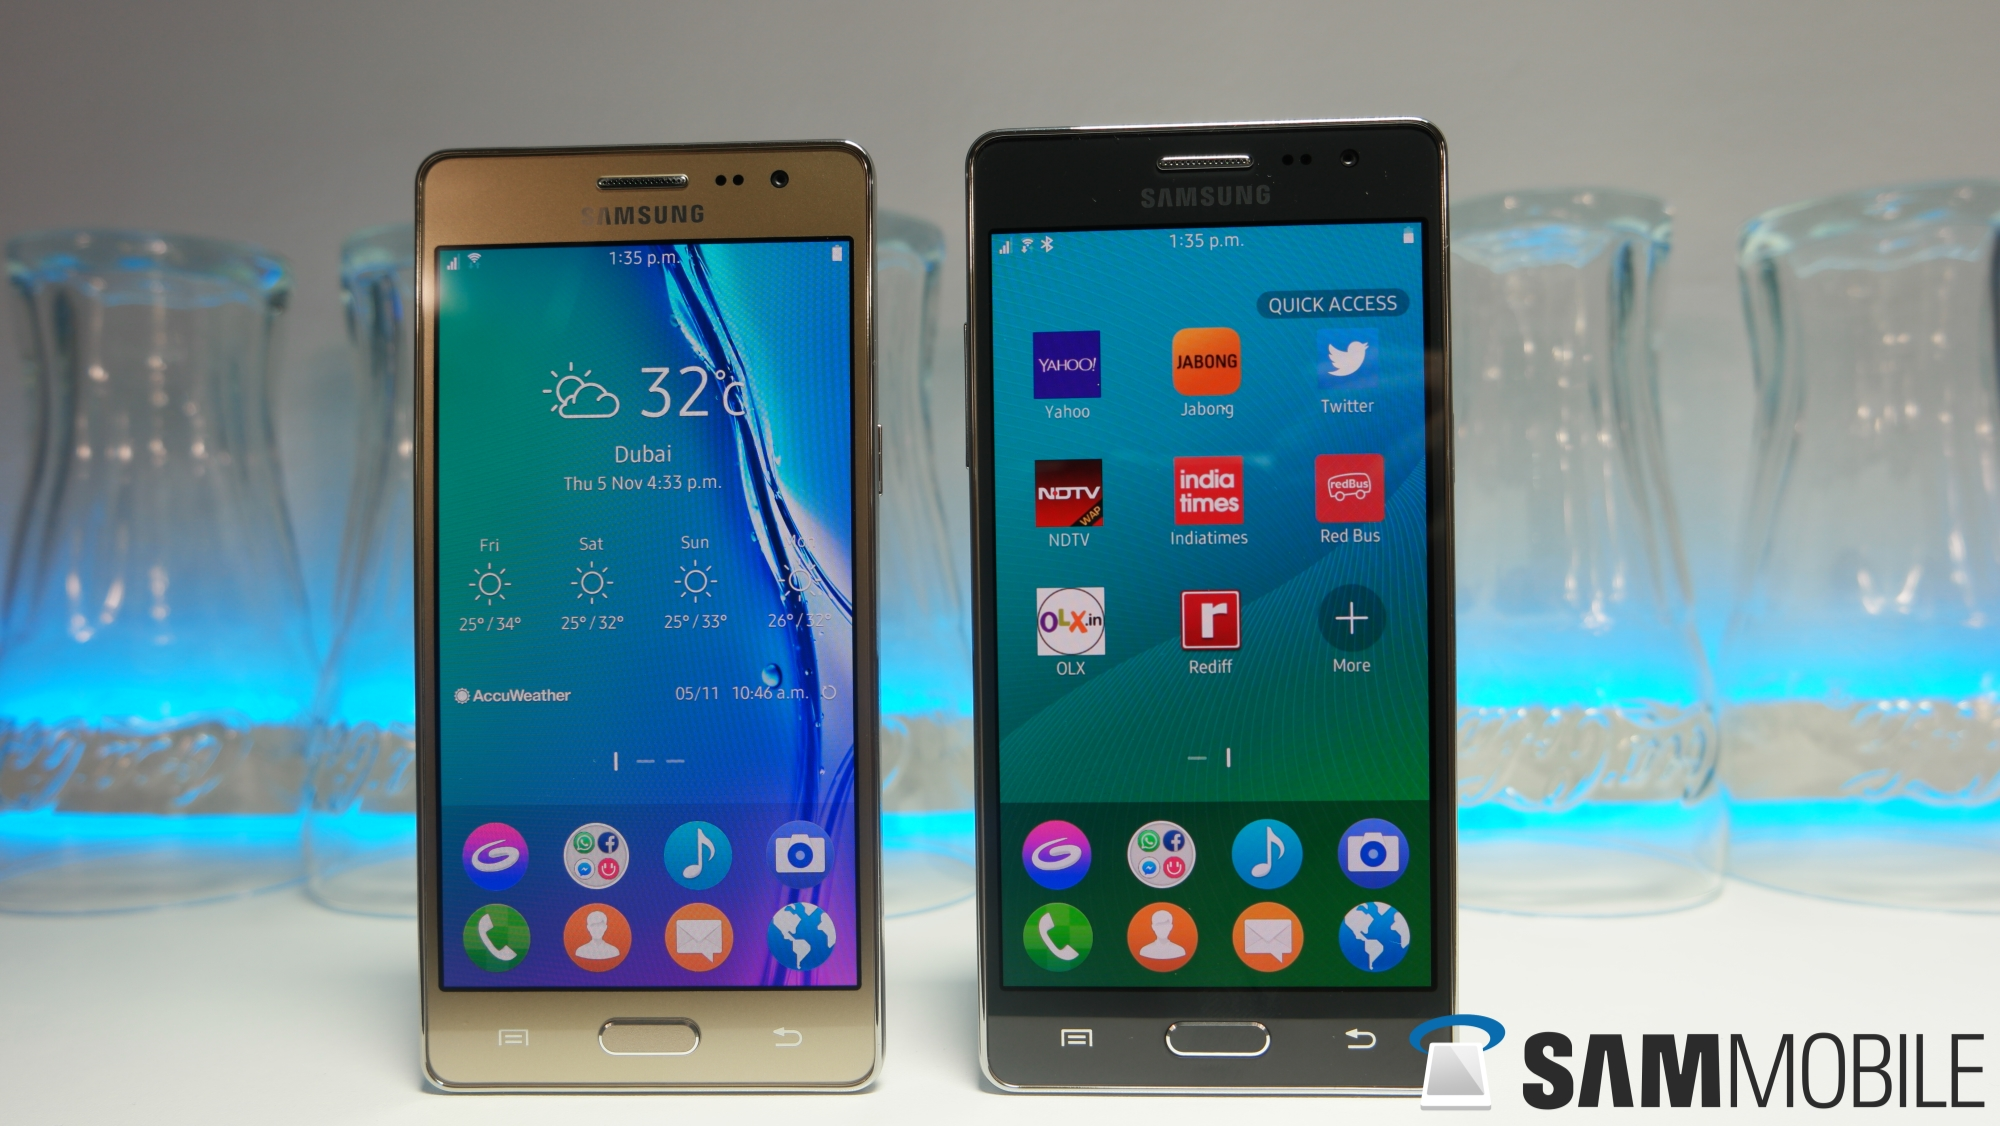 Phone Difference Between Android And Smart Phones samsung z3 review tizens app problem makes this a poor tizen is quite similar to samsungs touchwiz ux on android though there are few differences between how the two work home s